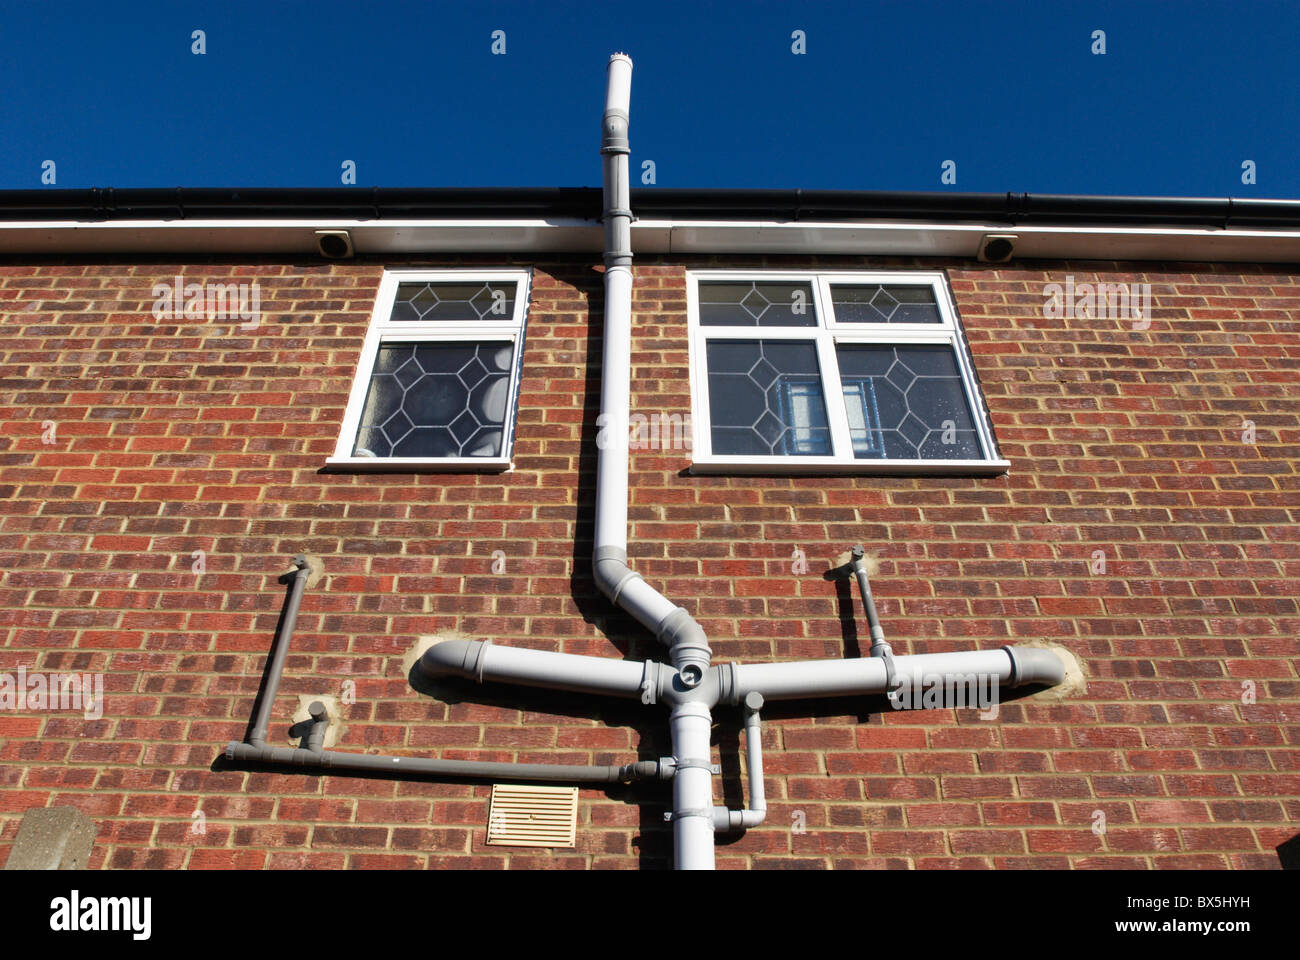 House drain pipe images galleries for Water pipeline design for home